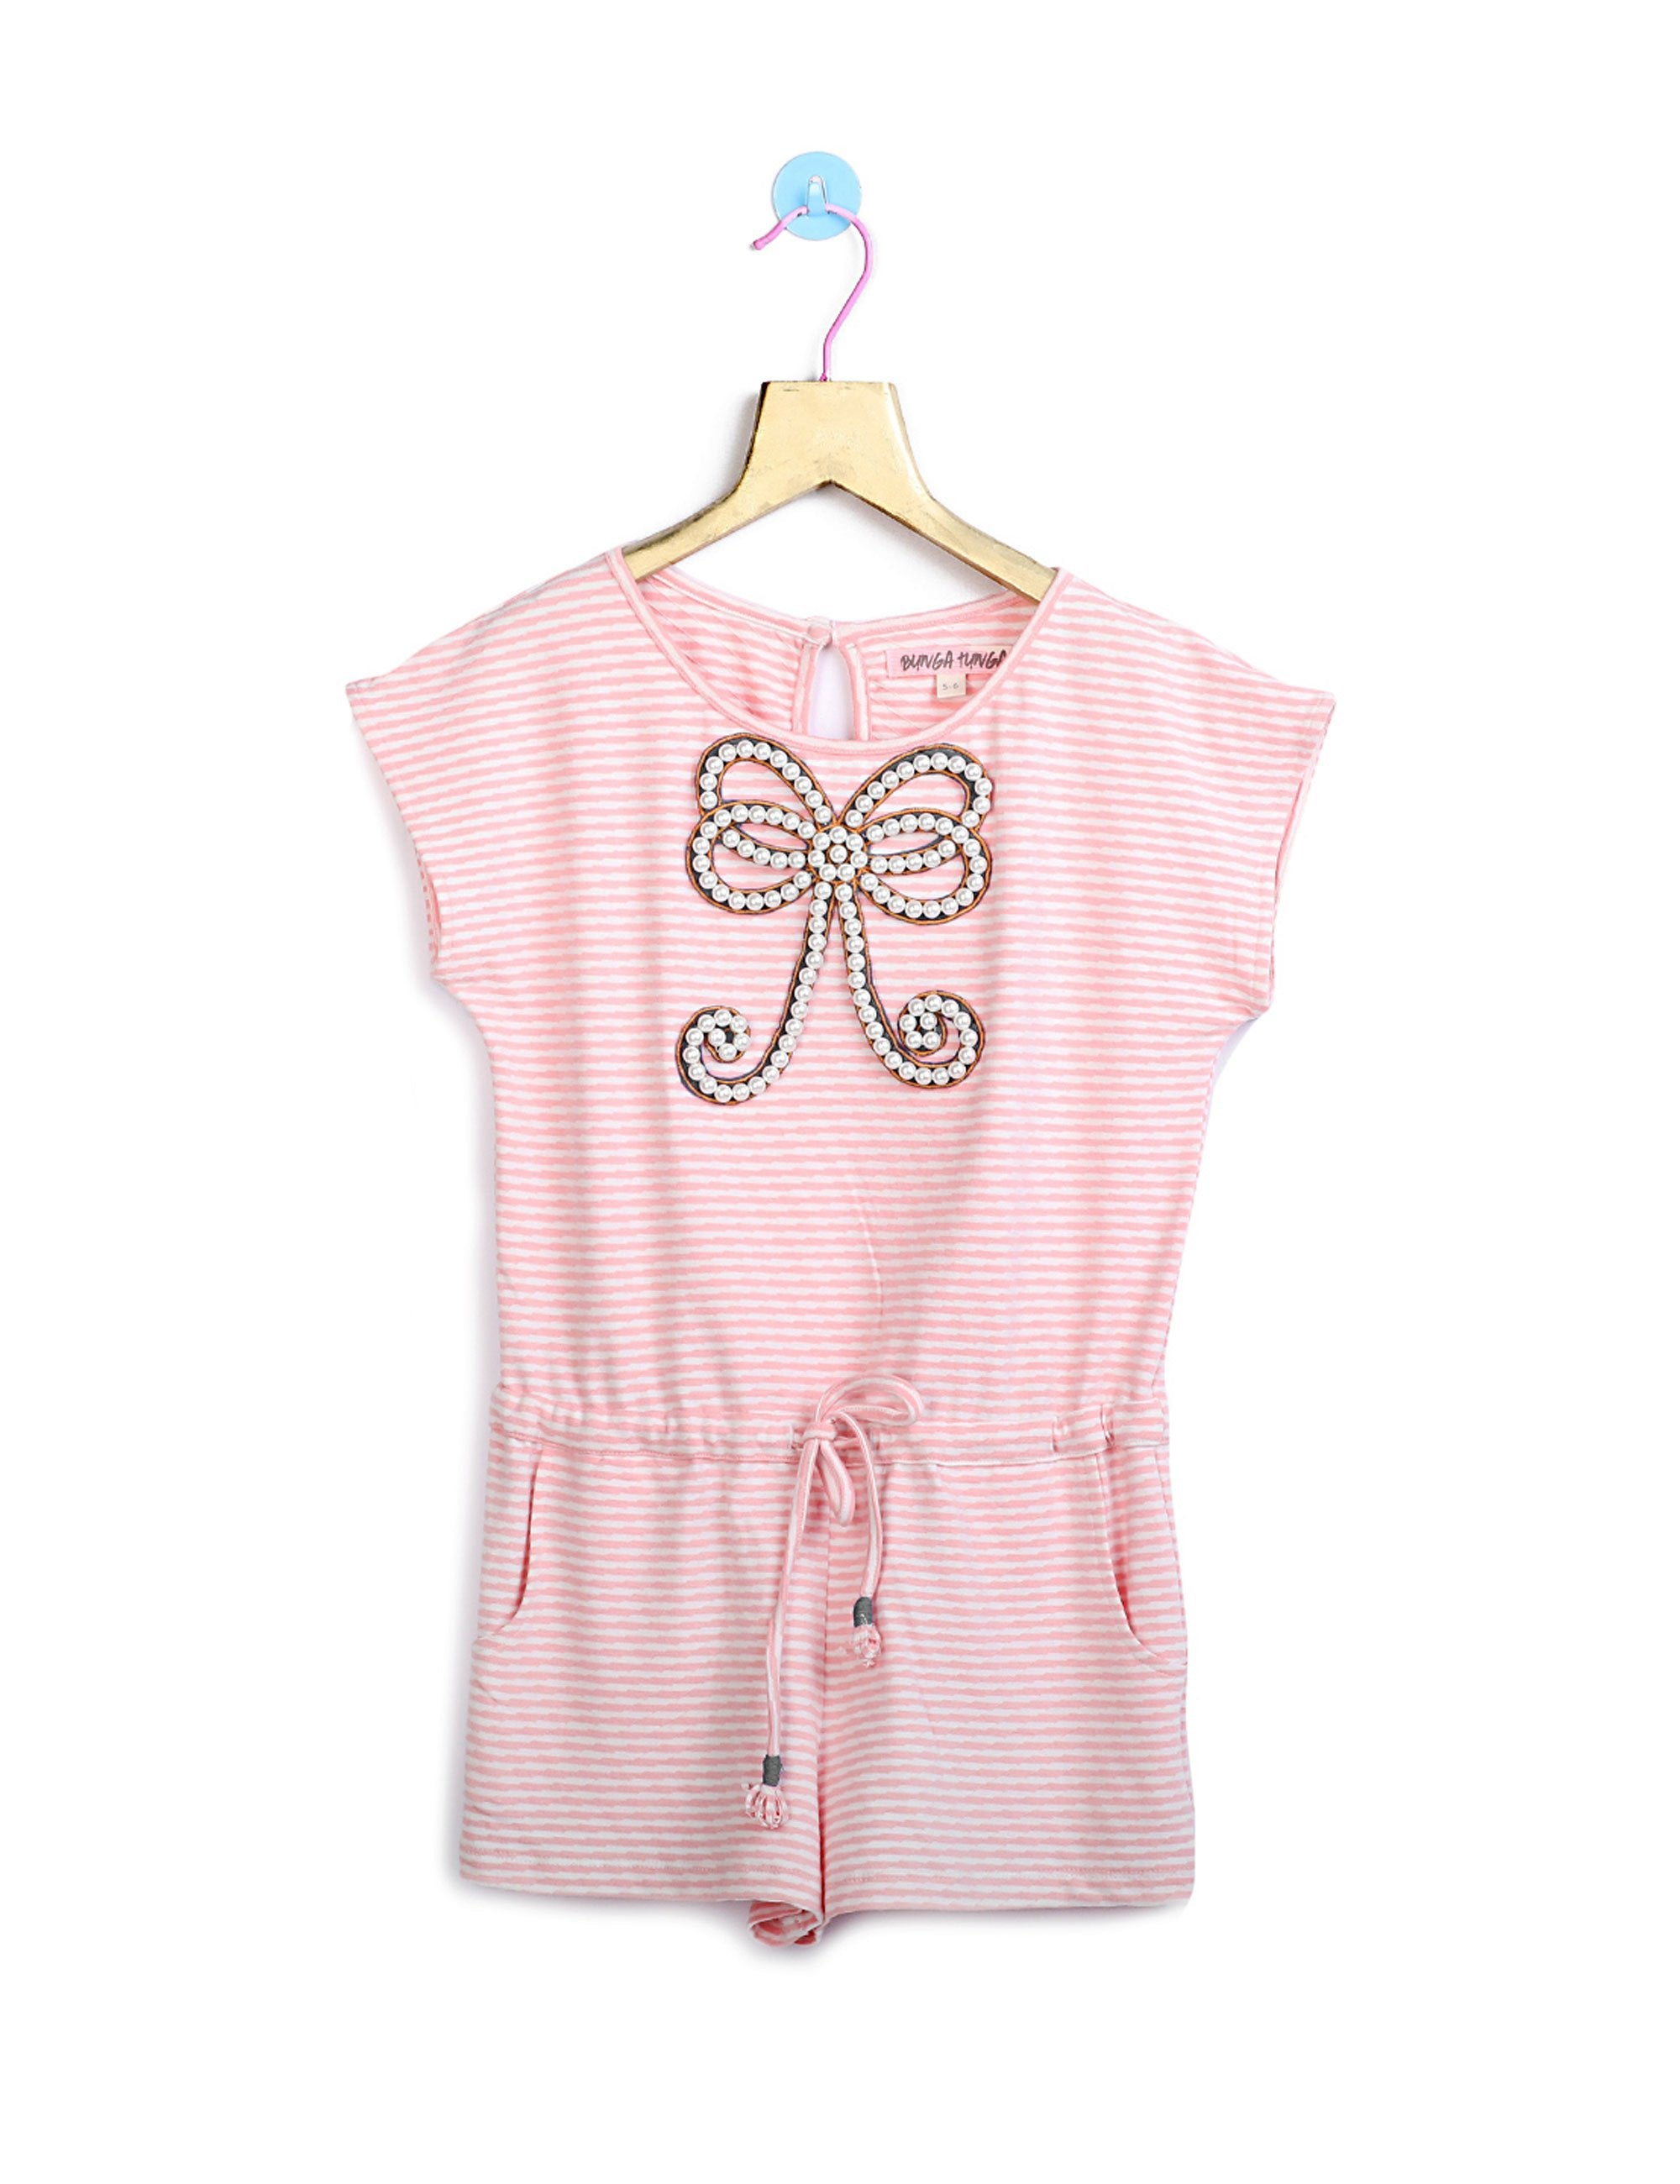 bcf1971207 Buy Pink Stripes Jumpsuit with Bow for Girls at best Price - Mini Firgun